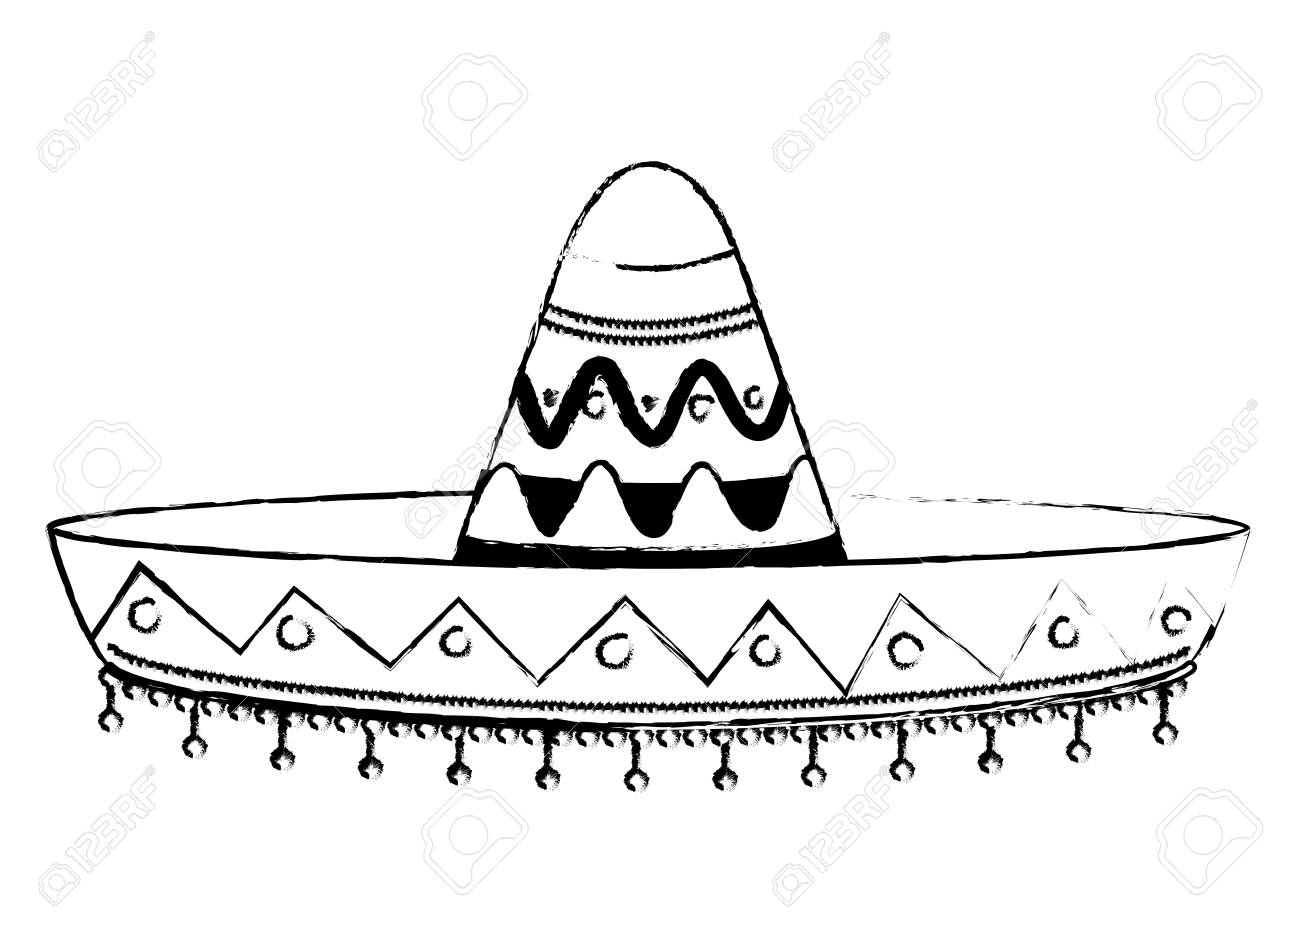 Clipart black and white mexico culture freeuse stock Mexican Drawings | Free download best Mexican Drawings on ClipArtMag.com freeuse stock